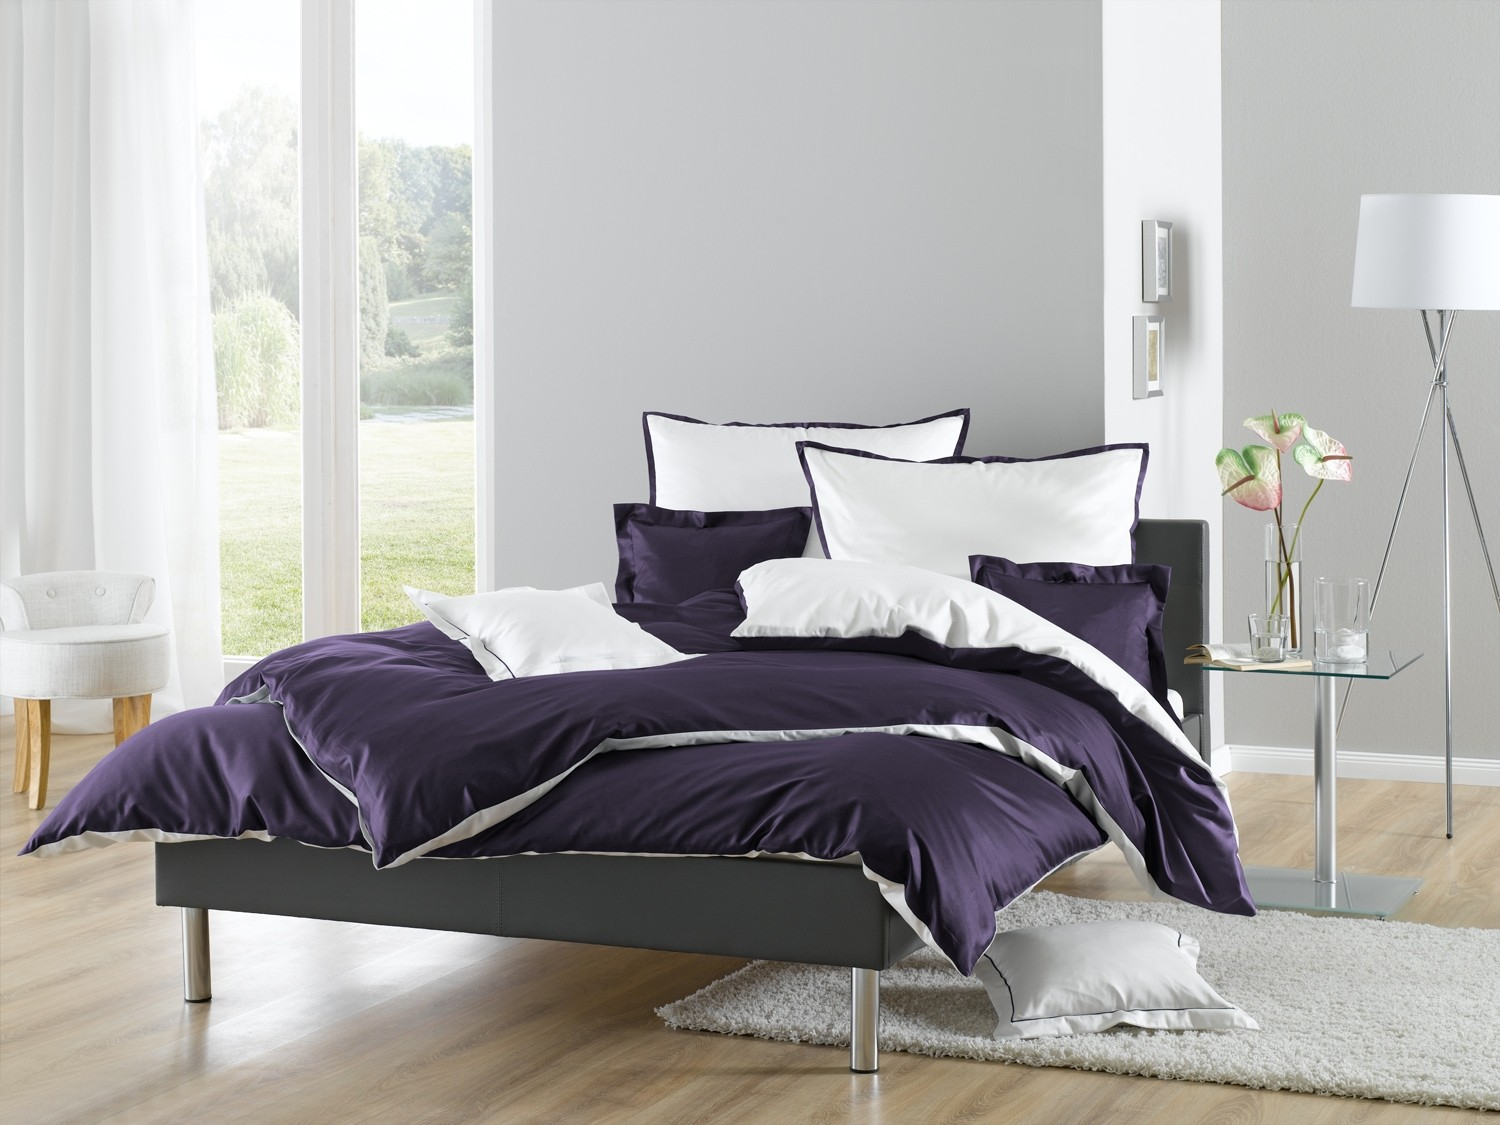 lorena wendebettw sche juliet mako satin malve kaufen bms. Black Bedroom Furniture Sets. Home Design Ideas